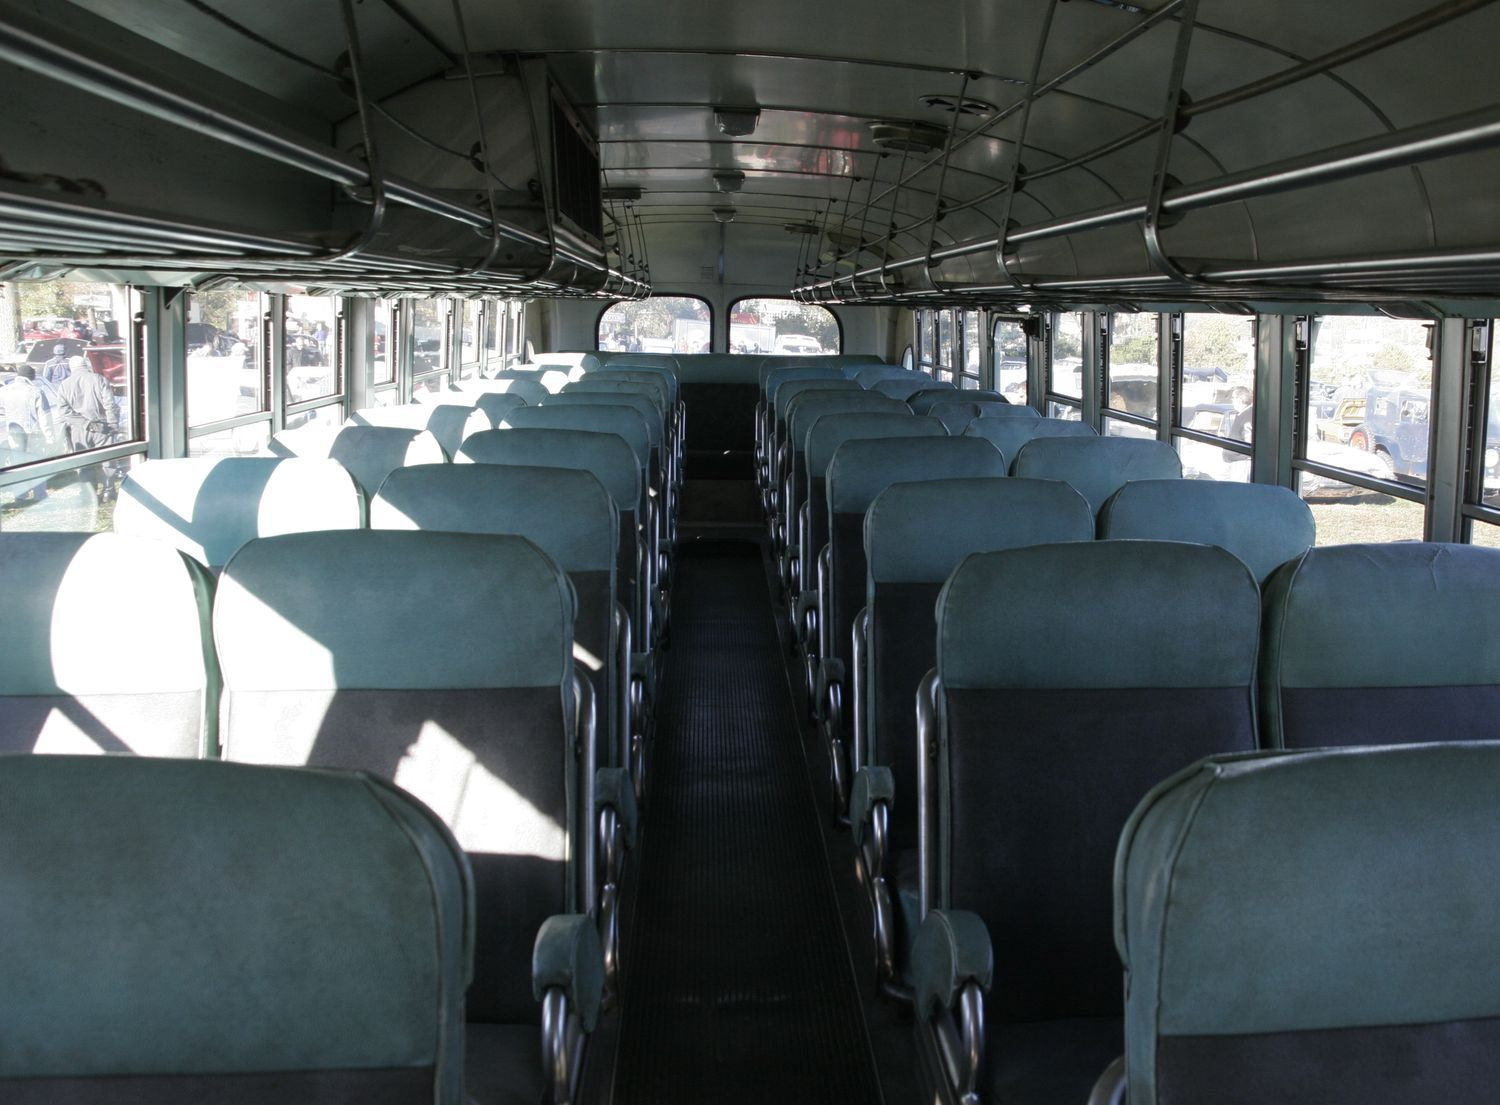 Gallery Images And Information Greyhound Bus Interior With